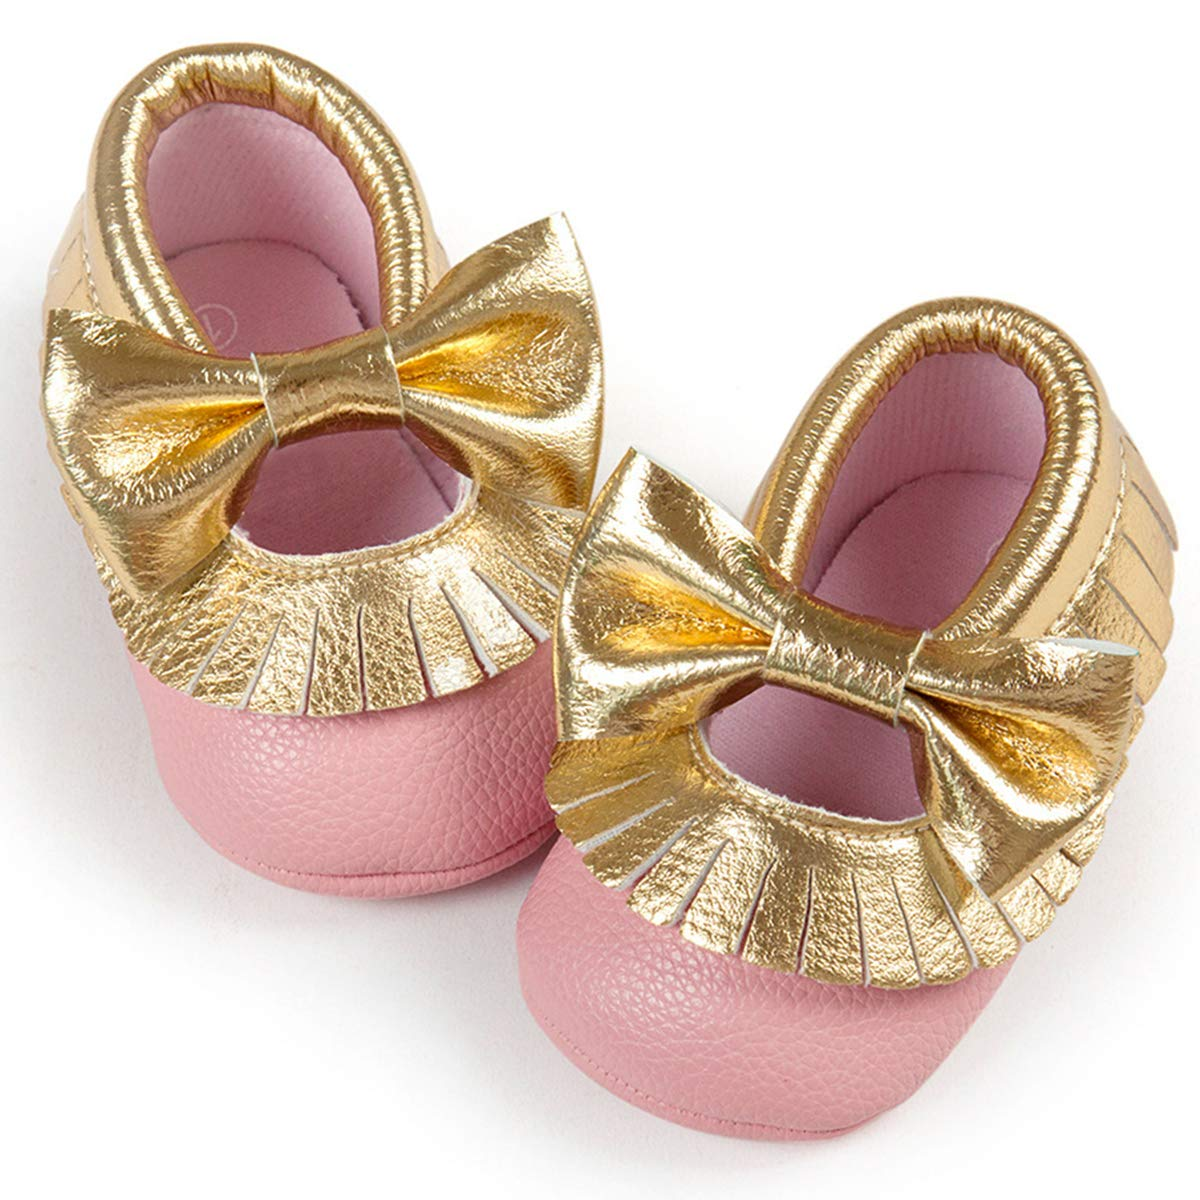 Infant Toddler Baby Girl Mary Jane Soft Sole Princess Shoes Prewalker Crib Dress Shoes